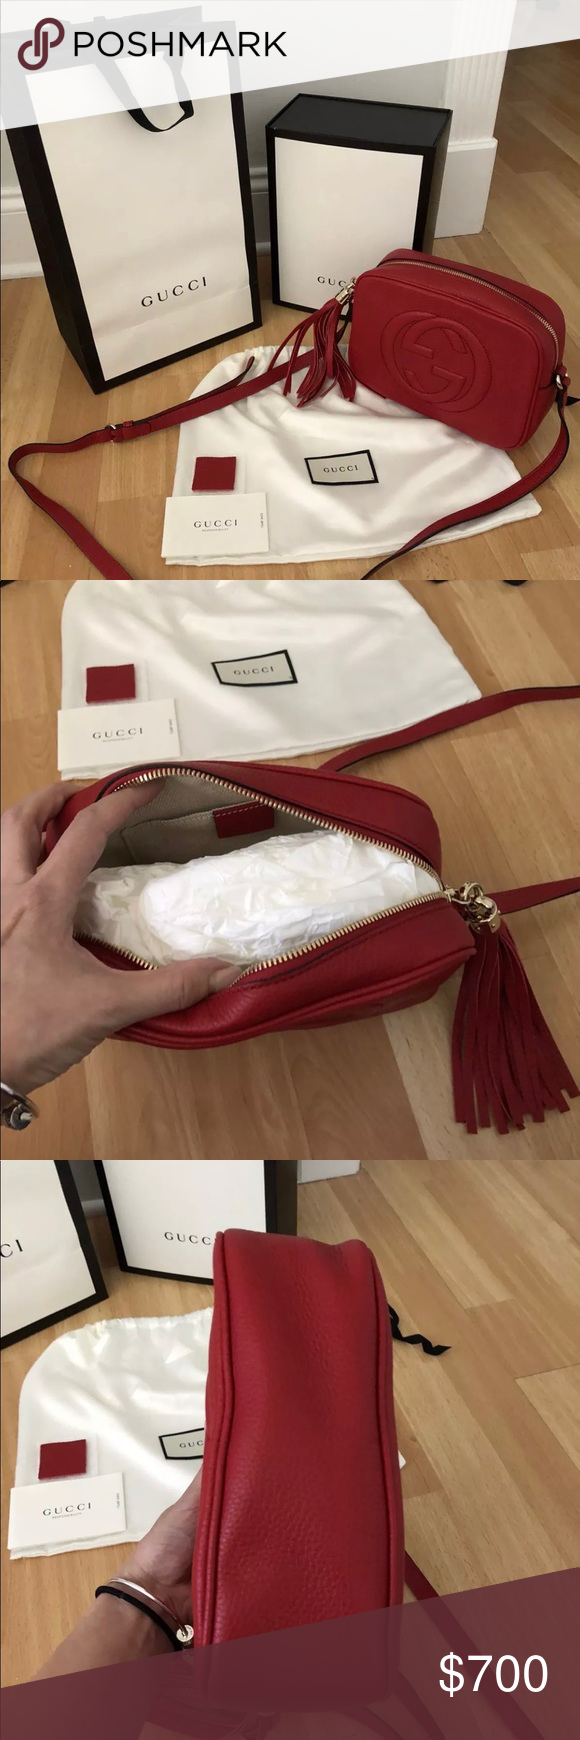 891f69b313d Red Gucci soho disco bag 100% authentic comes with original packaging  prices are negotiable Gucci